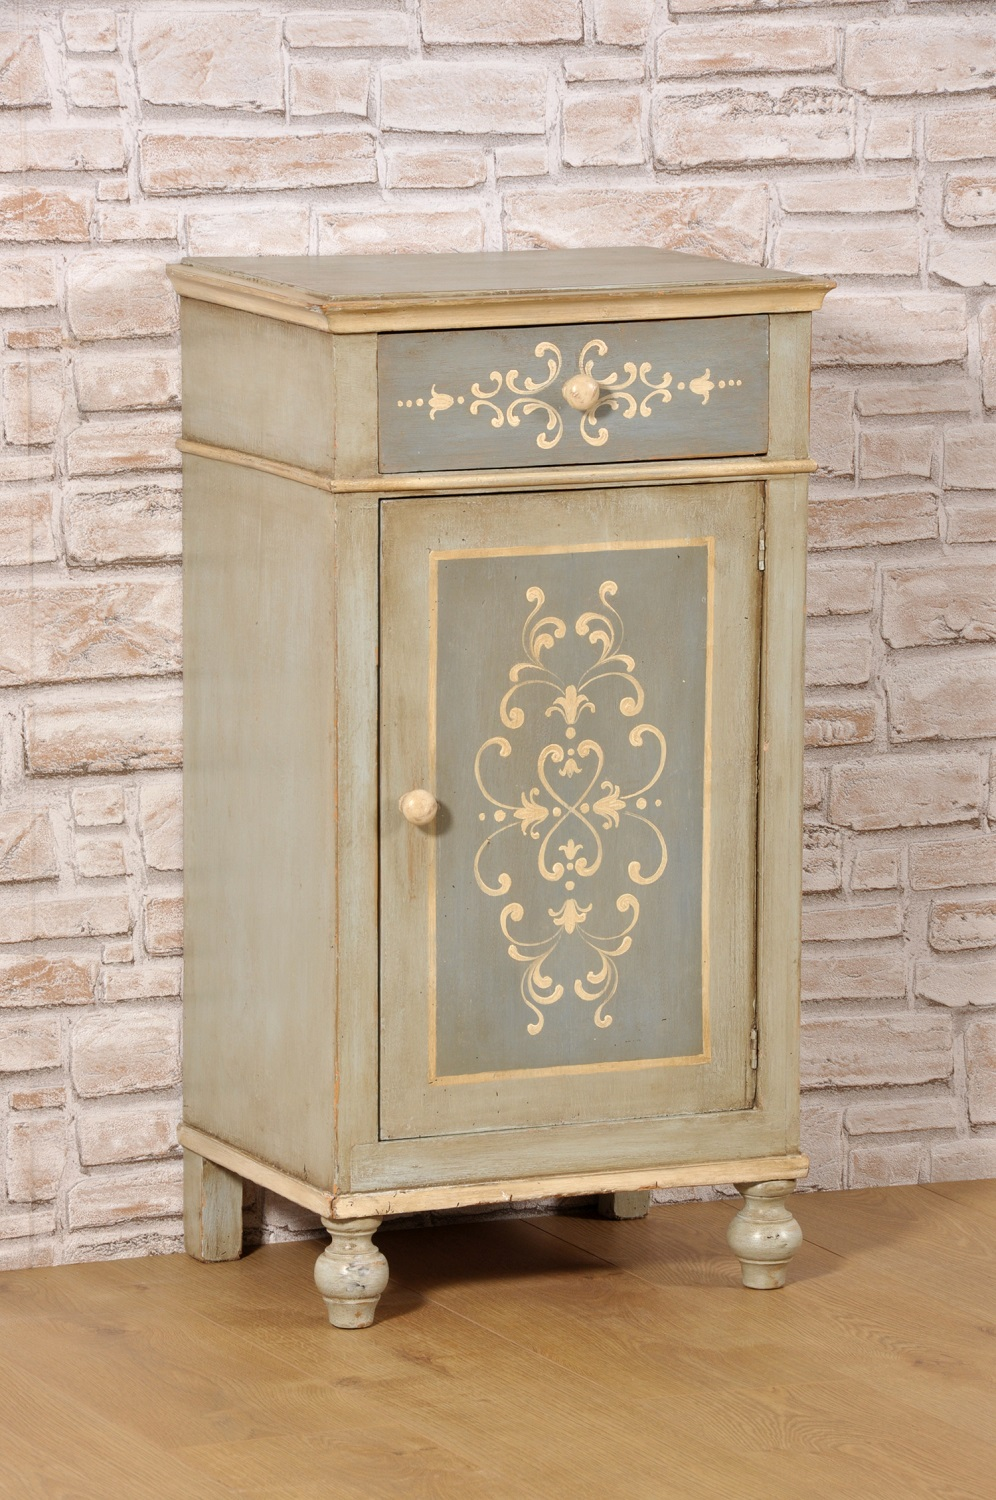 Bedside Cabinet Hand Painted Custom Made Tyrolean Baroque Style 18th Century With Turned Legs Mobili Vangelista Painting Wood Furniture Painted Cupboards Furniture Makeover